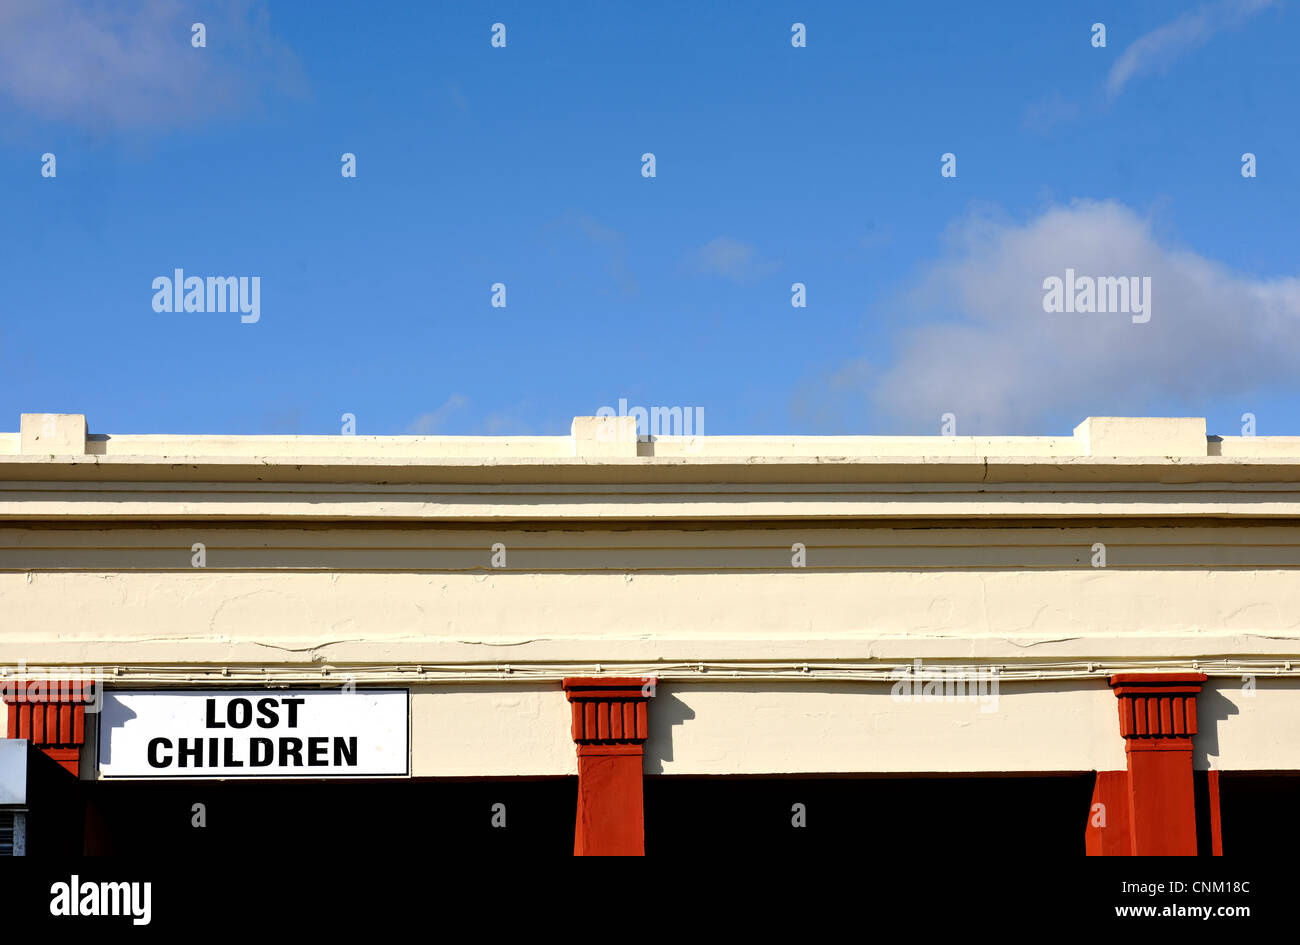 Lost Children sign at seaside resort against a blue sky with white clouds - Stock Image